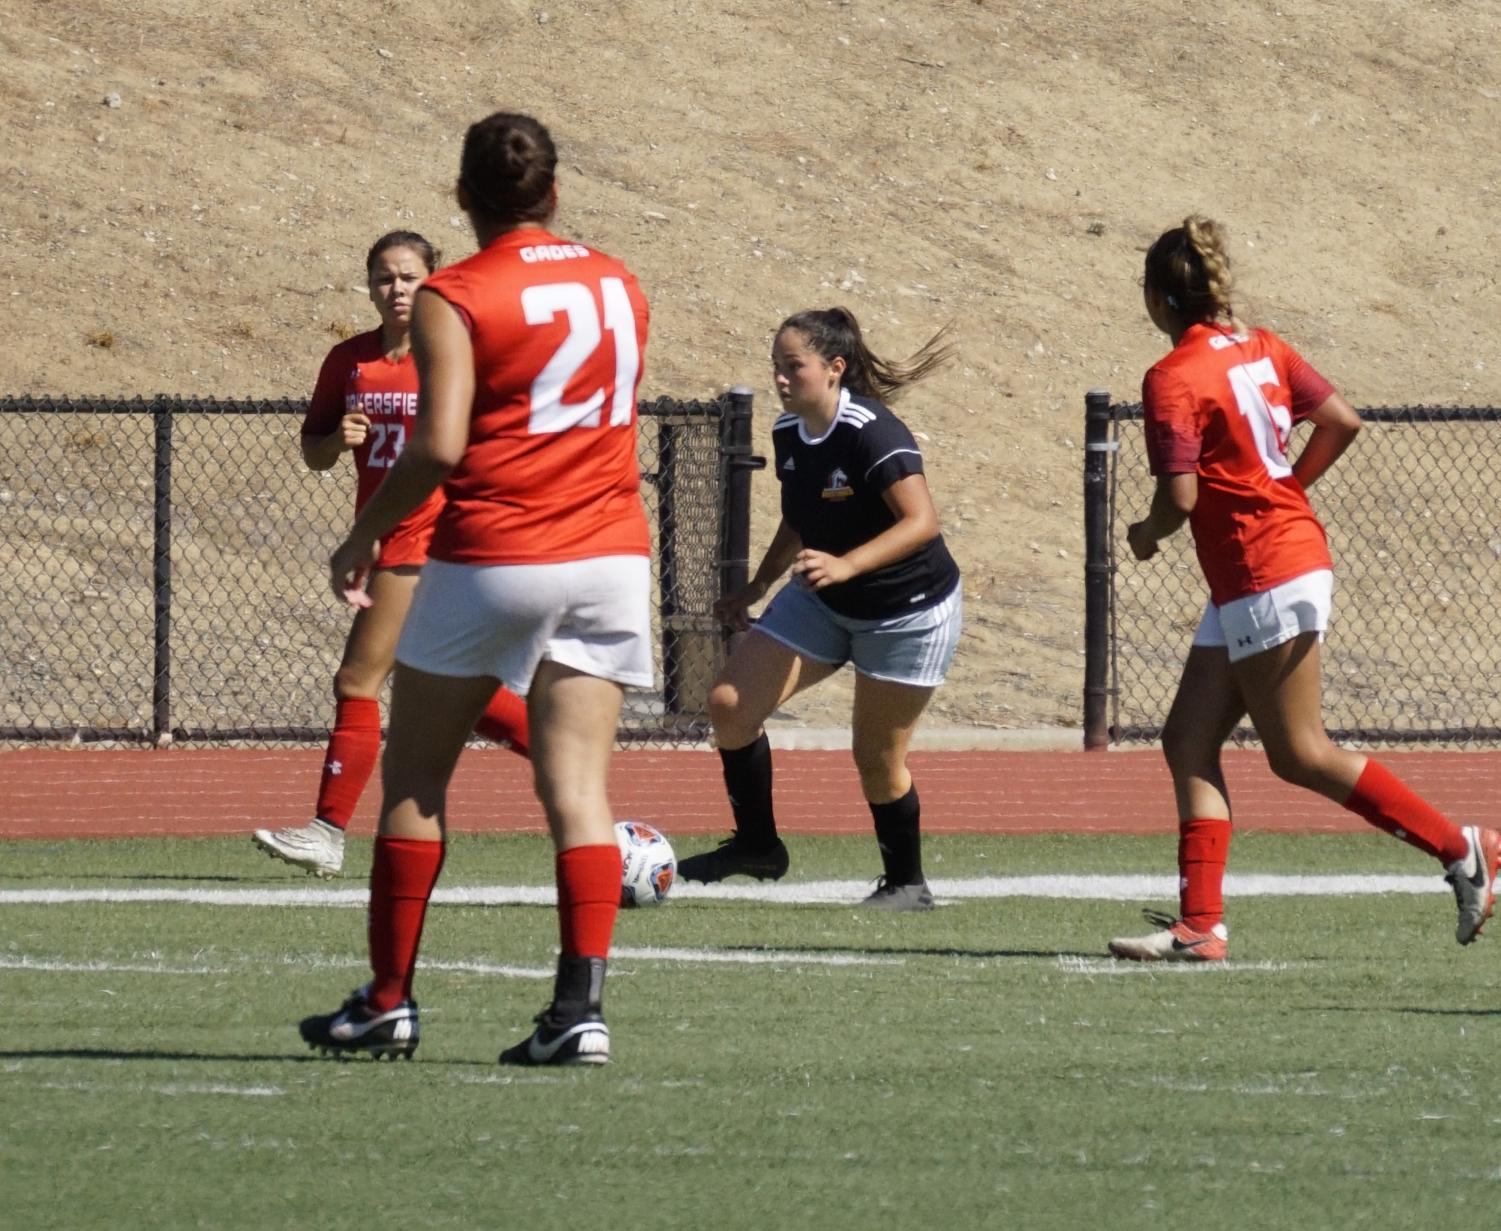 Jazmin Alanis, 2, takes on three Bakersfield College players during a soccer game on August 30, 2019 at Los Medanos College in Pittsburg, California.